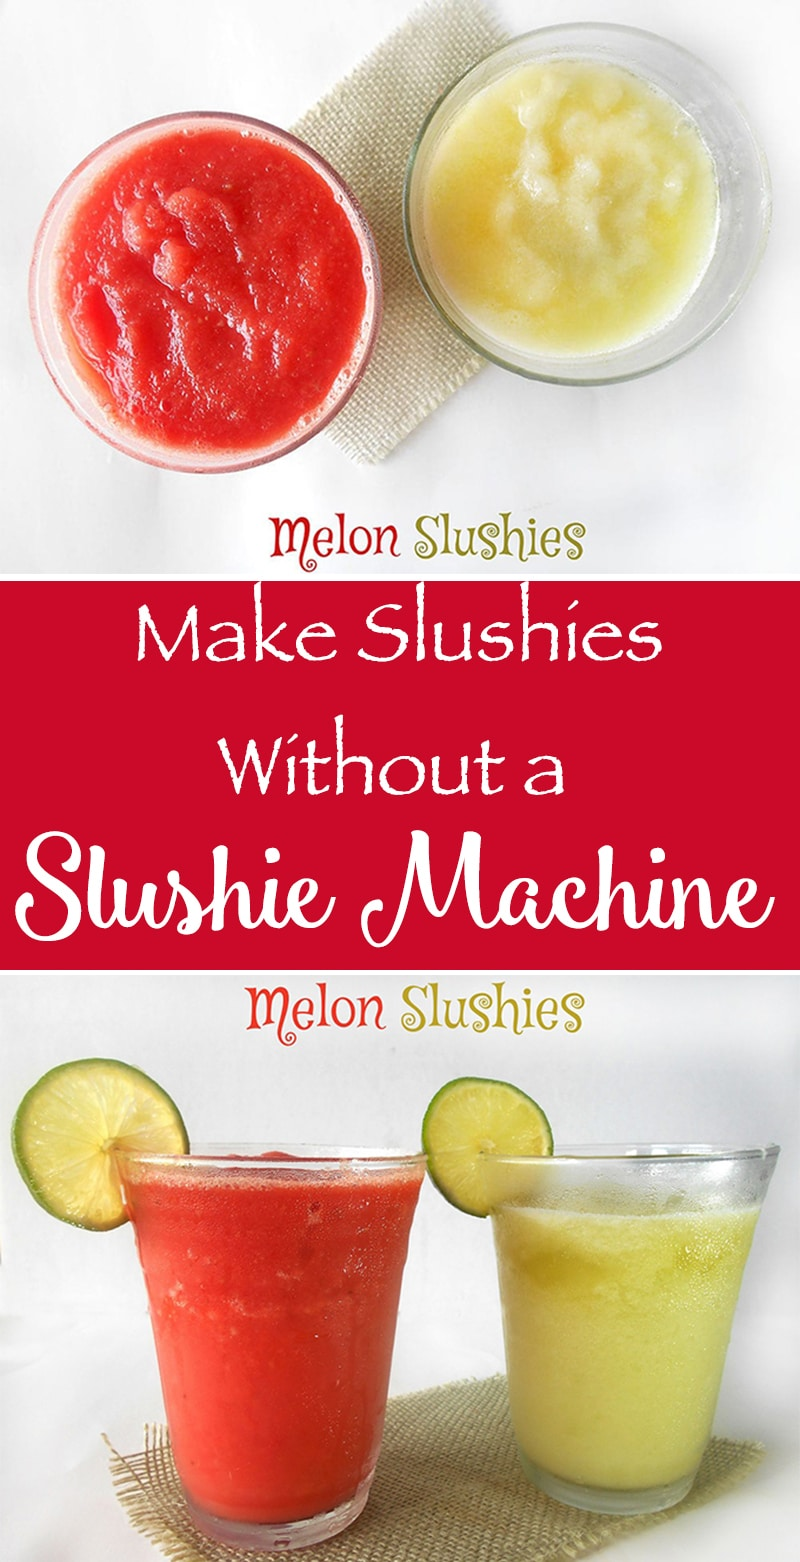 Make Slushies without a slushy machine? Use Fresh Watermelons & Honeydew, Make This Quick Summer Coolers. Takes Only 20 minutes. Optionally, Add Malibu Rum